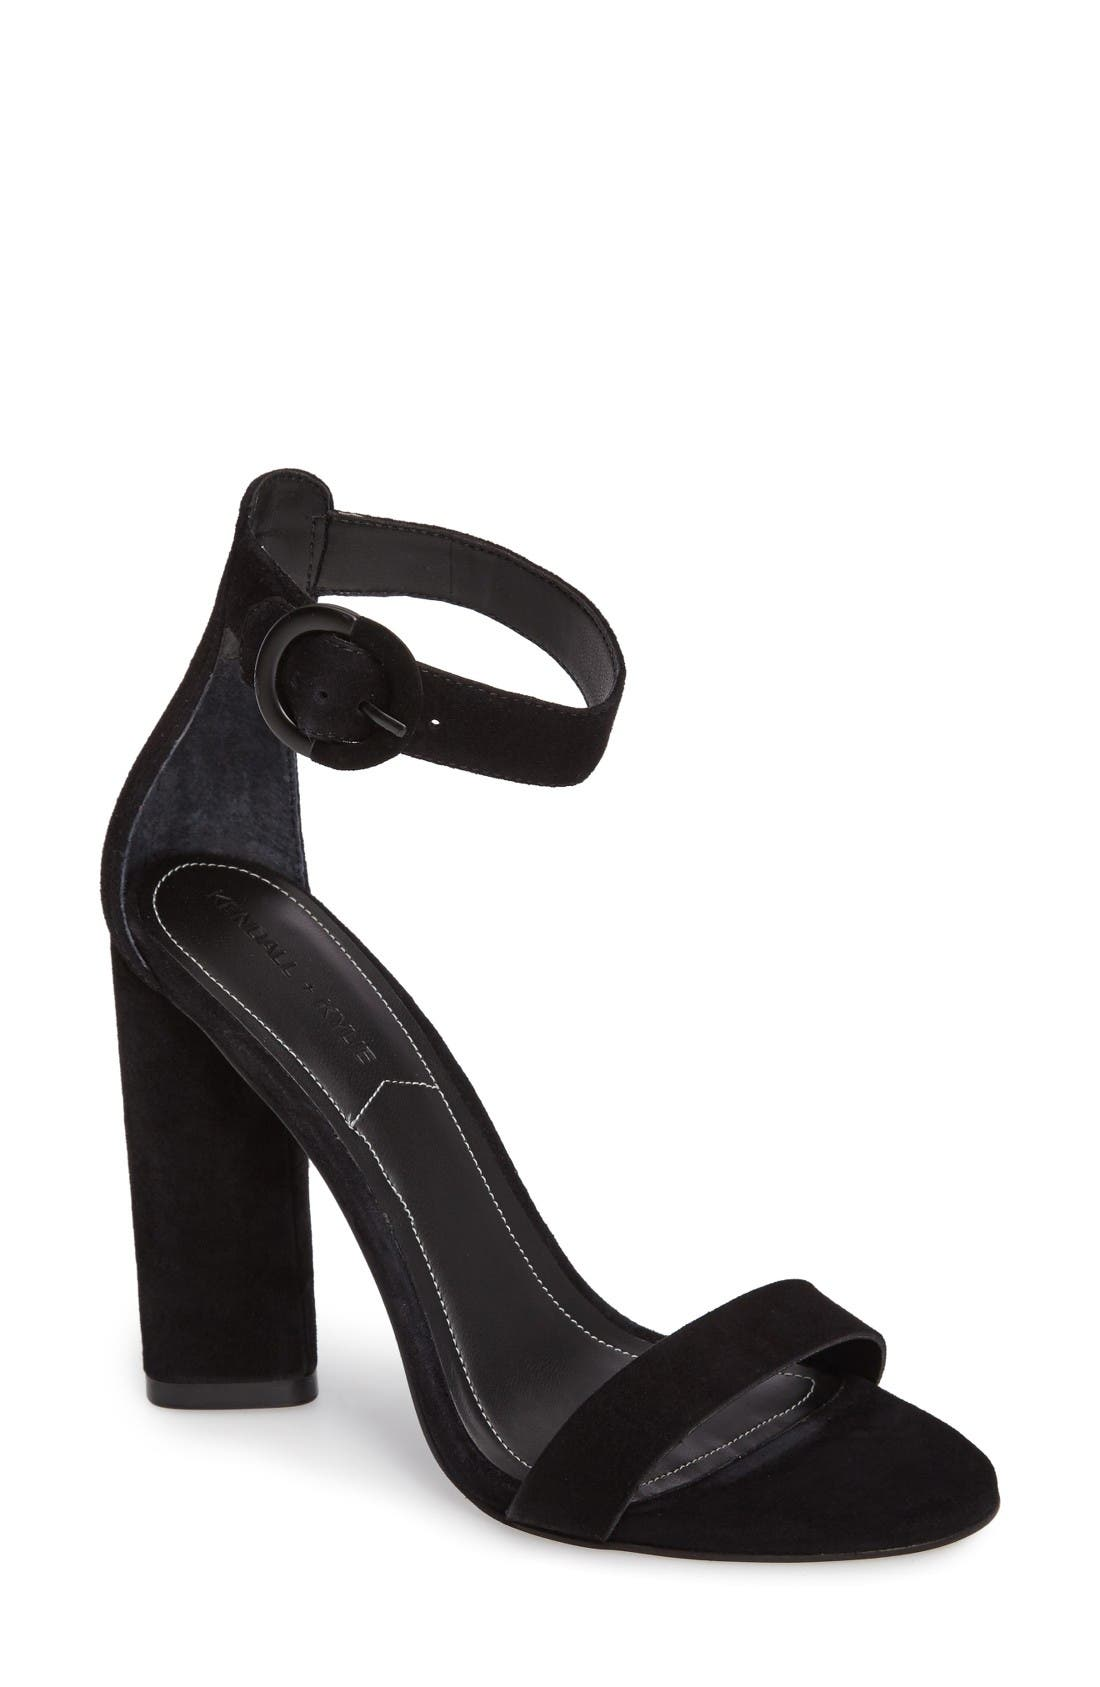 KENDALL + KYLIE Giselle Strappy Sandal (Women)